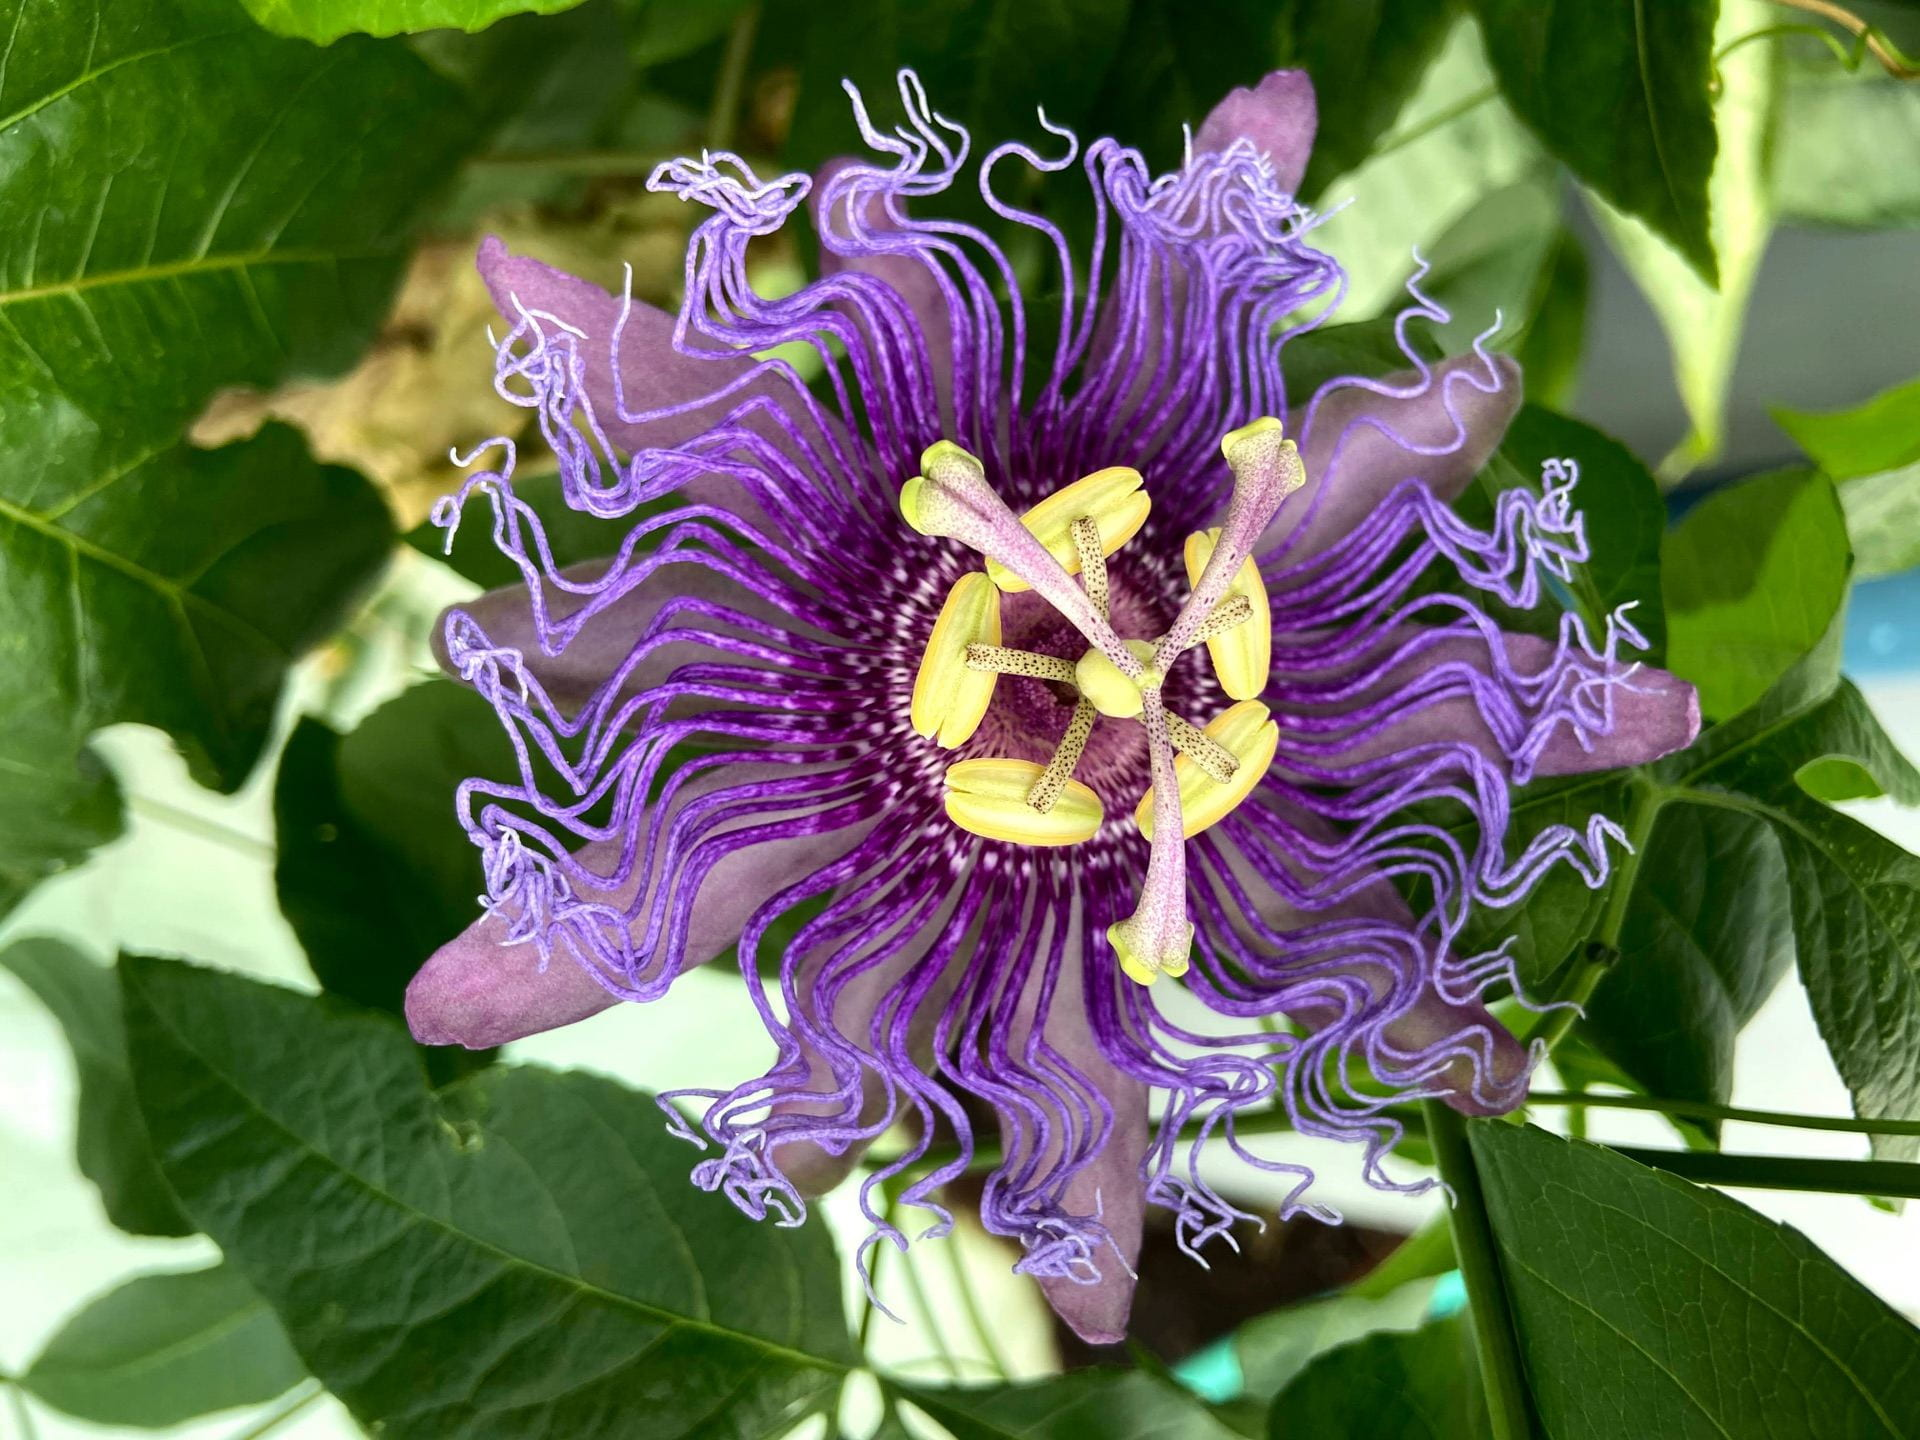 Passiflora incarnata, known as maypop, is a showstopper in the greenhouse.